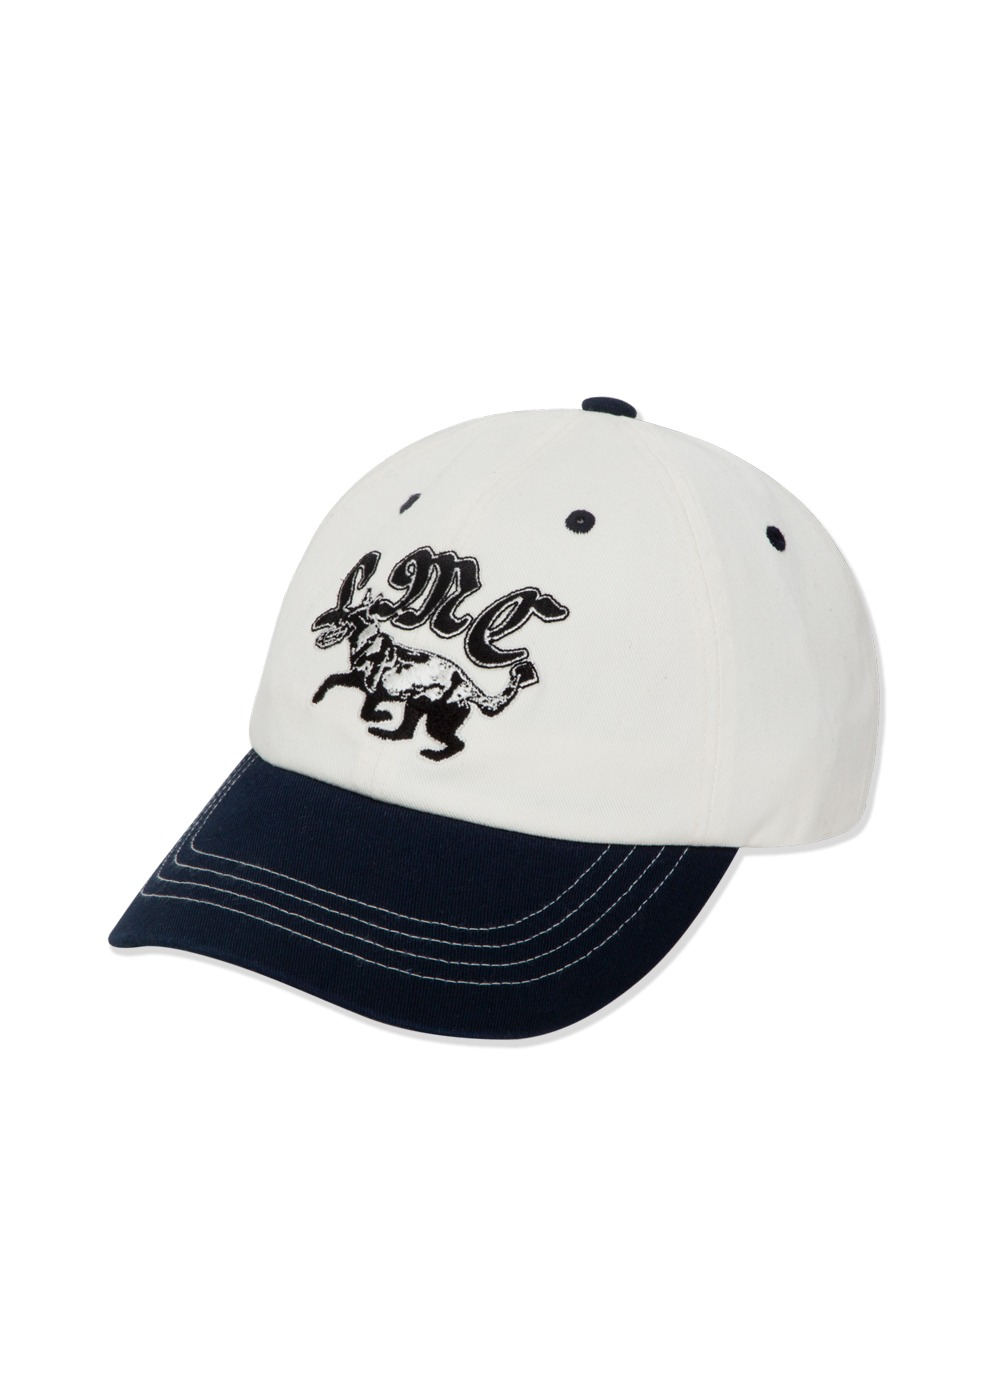 LMC TWO-TONE DOG 6 PANEL CAP navy